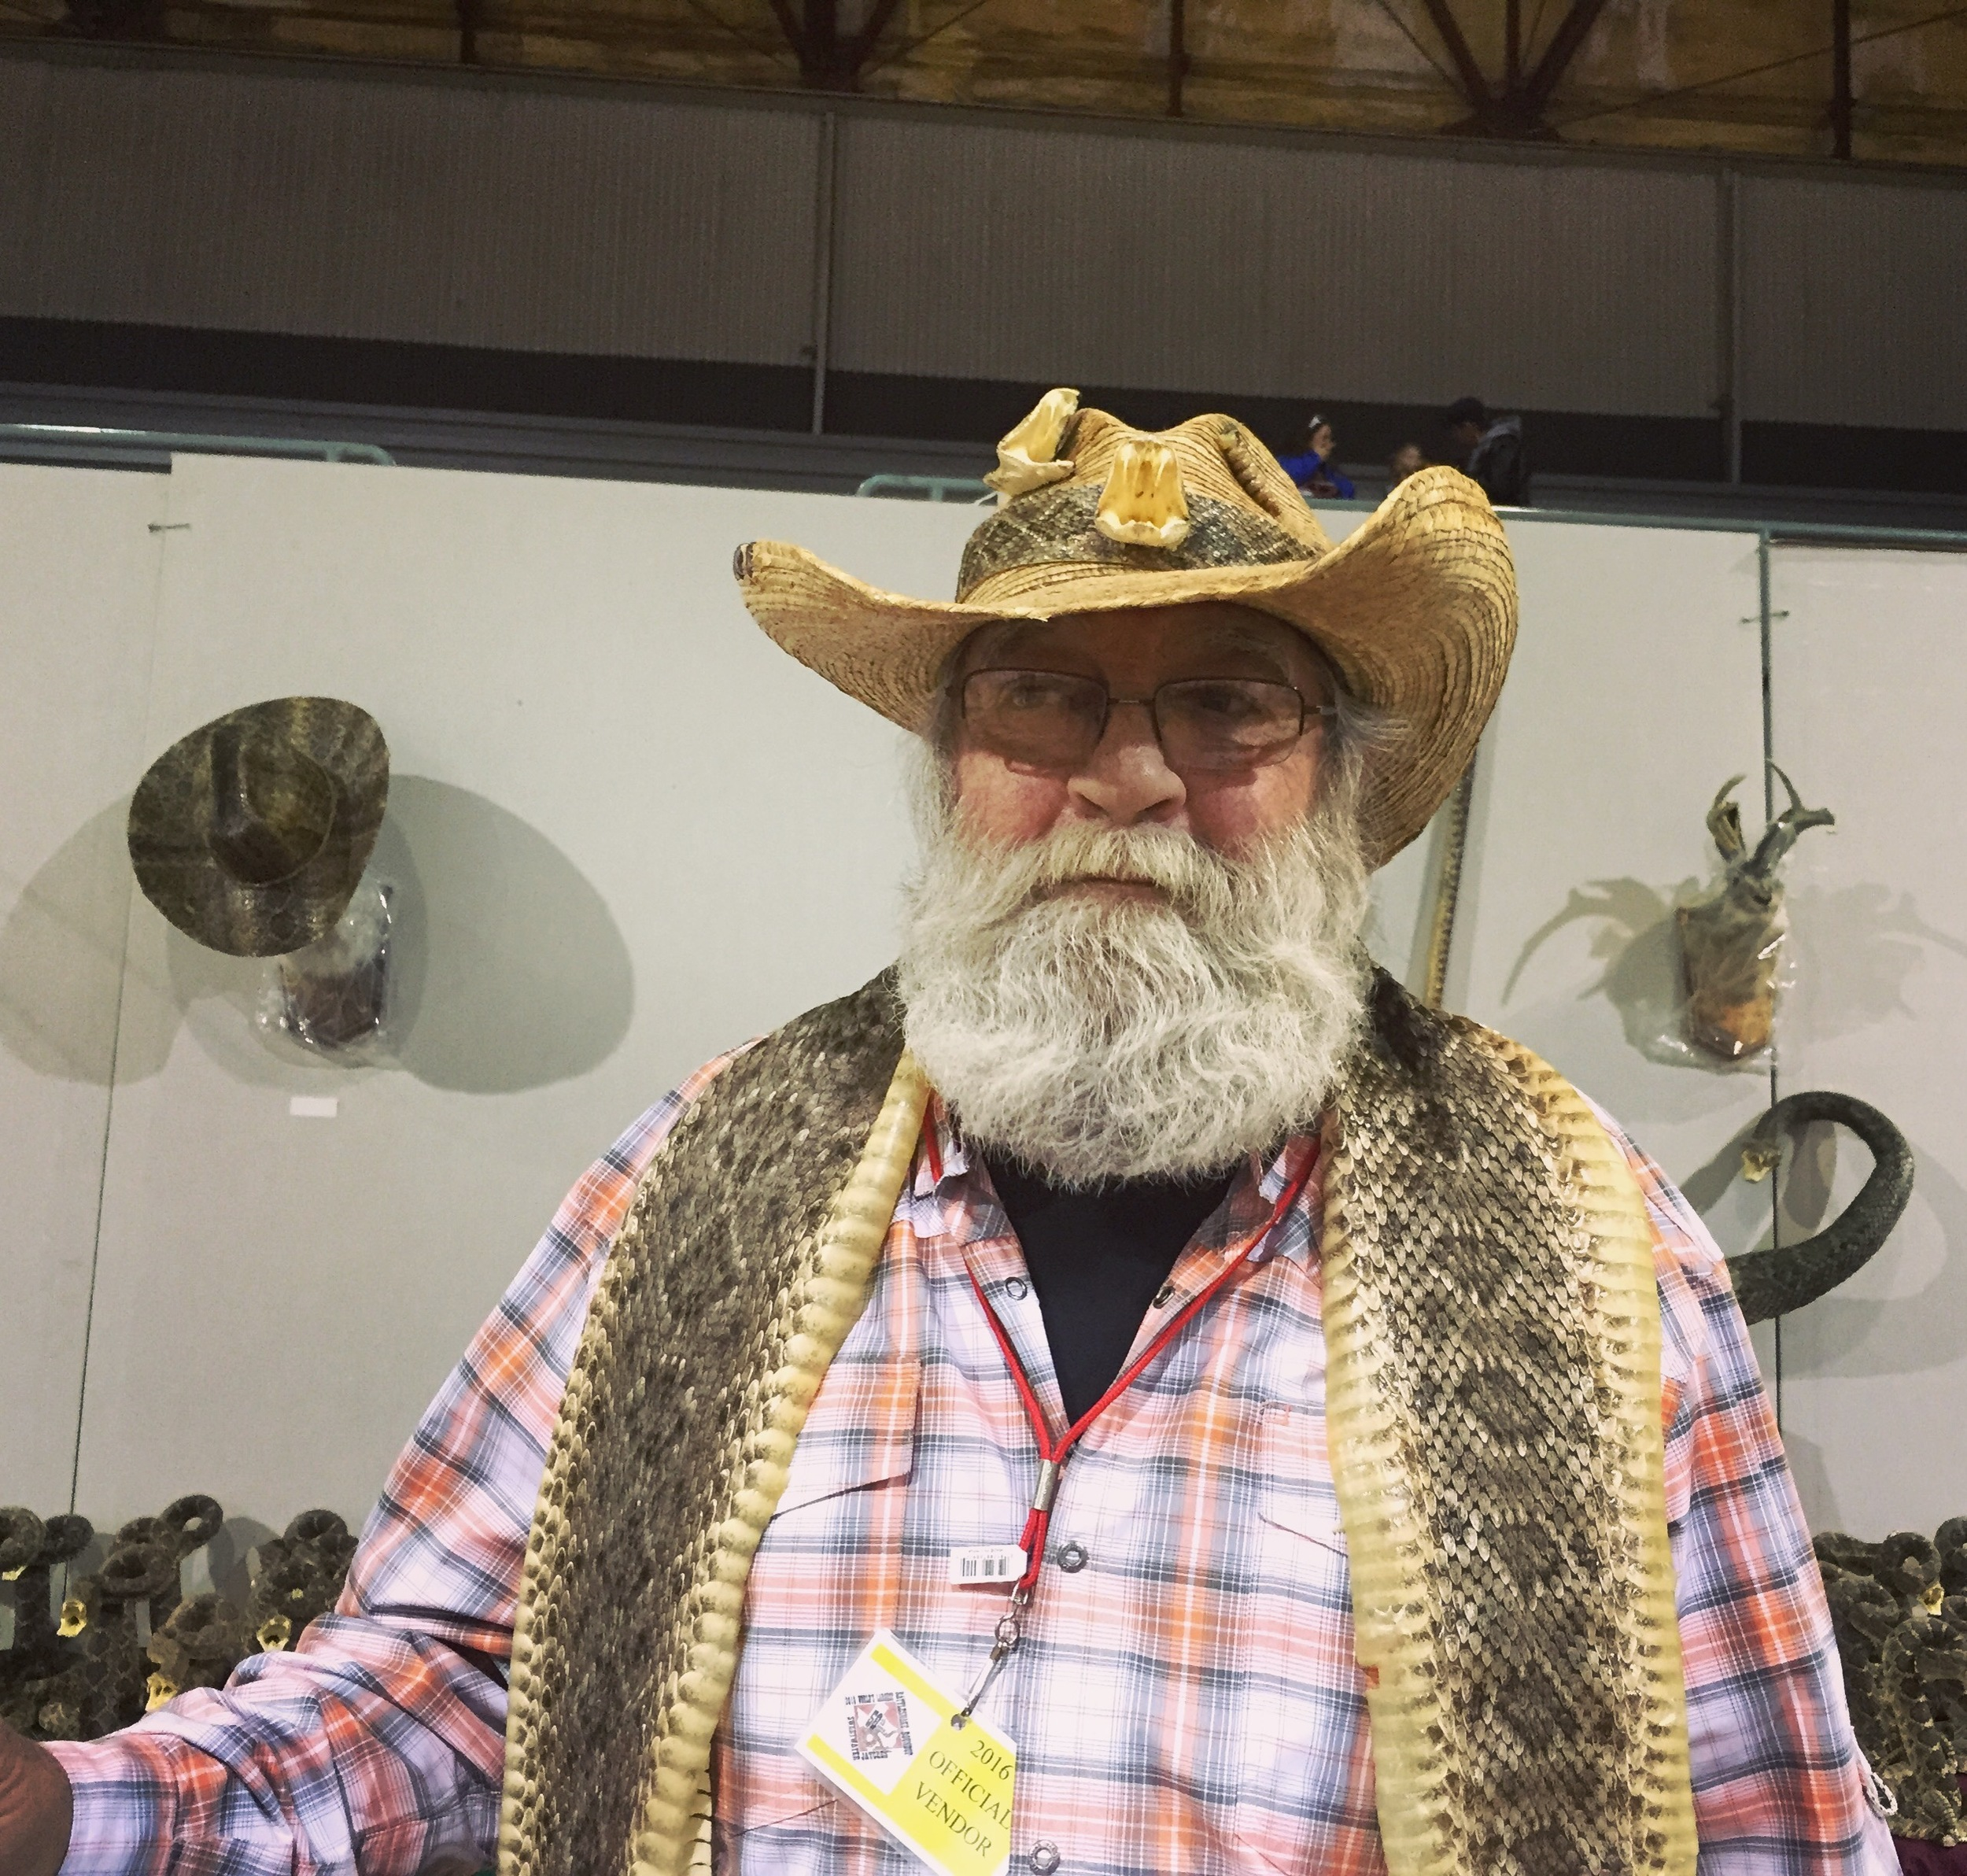 March, 2016. Sweetwater, TX.  James Smith needed a job and five years ago his buddy with Randall's Wildlife Creations said he could work in sales.The   #SweetwaterRattlesnakeRoundup   is their biggest event.  #sweetwater2016    #texas  #sweetwater2016    #rattlesnakeroundup  #SnapshotLives   Full story:  http://www.mrt.com/news/top_stories/article_d529f200-ed57-11e5-b3db-7f3527555ee4.html